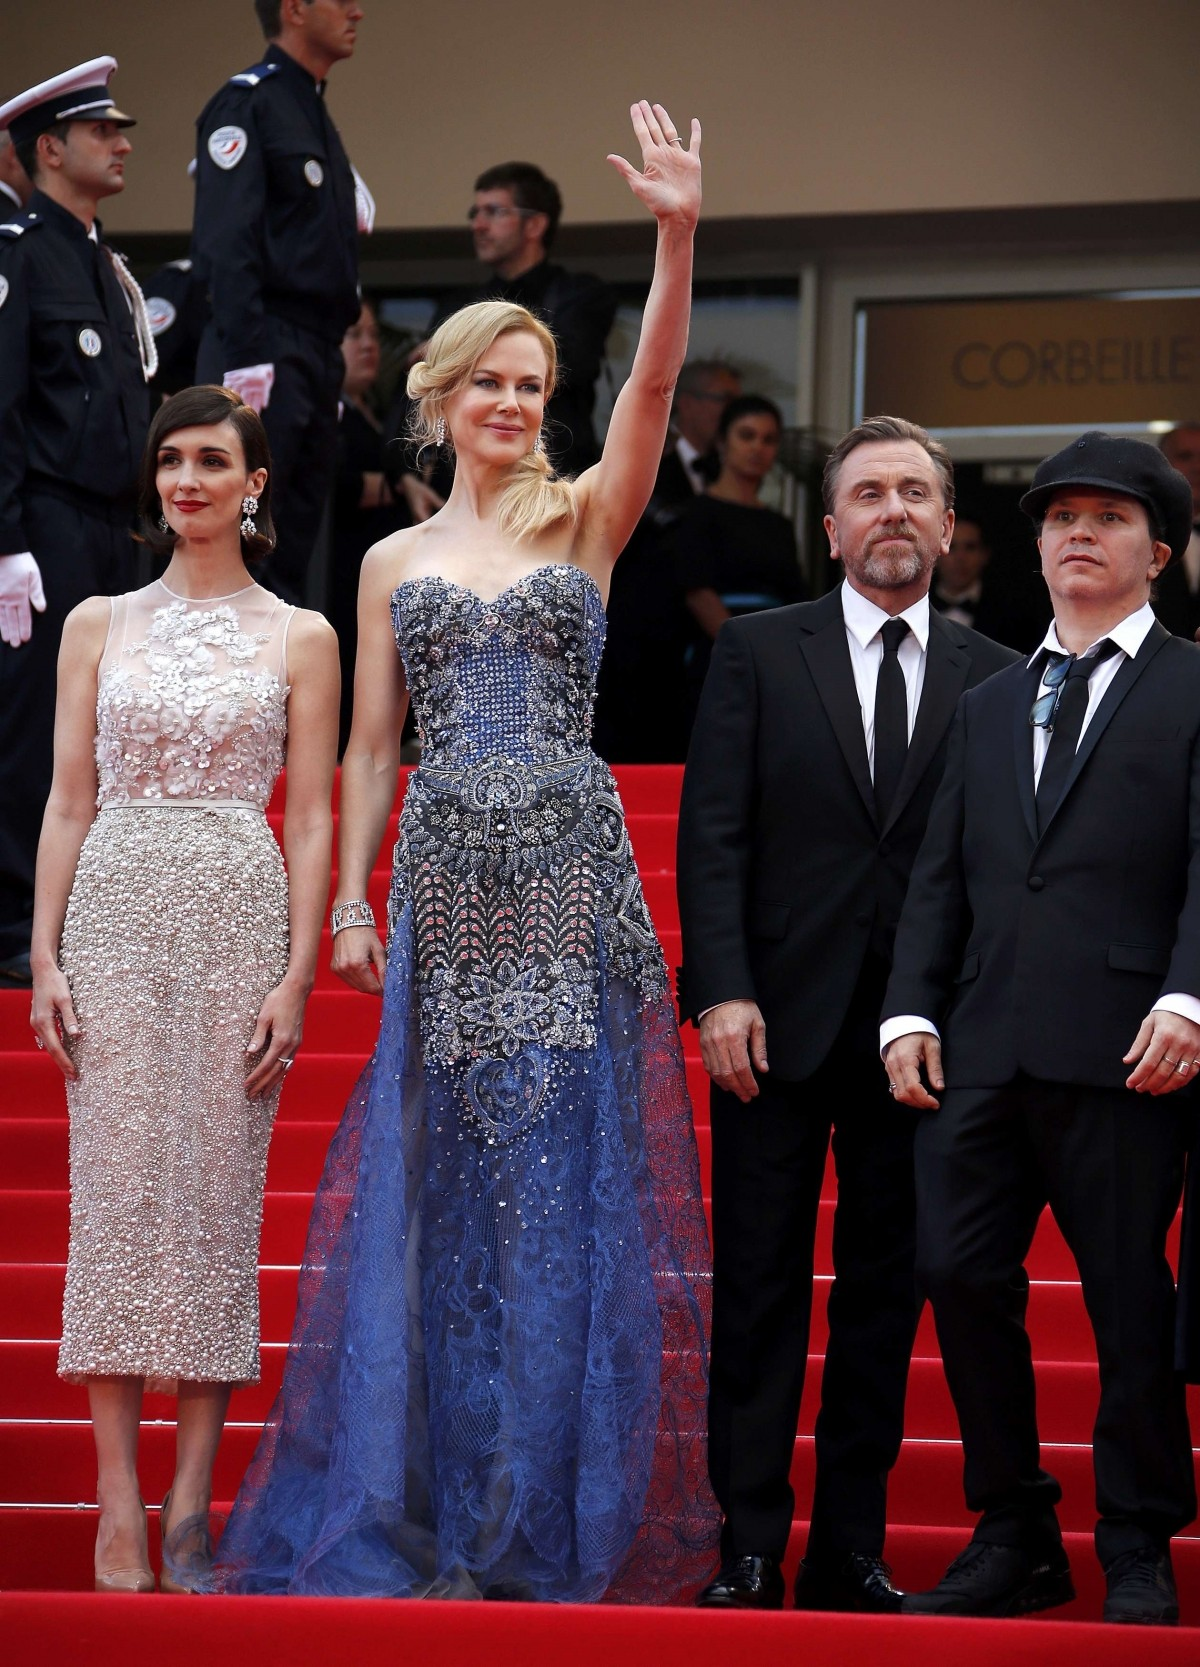 Director Olivier Dahan, cast members Paz Vega, Nicole Kidman, Tim Roth pose on the red carpet as they arrive for the opening ceremony and the screening of the film